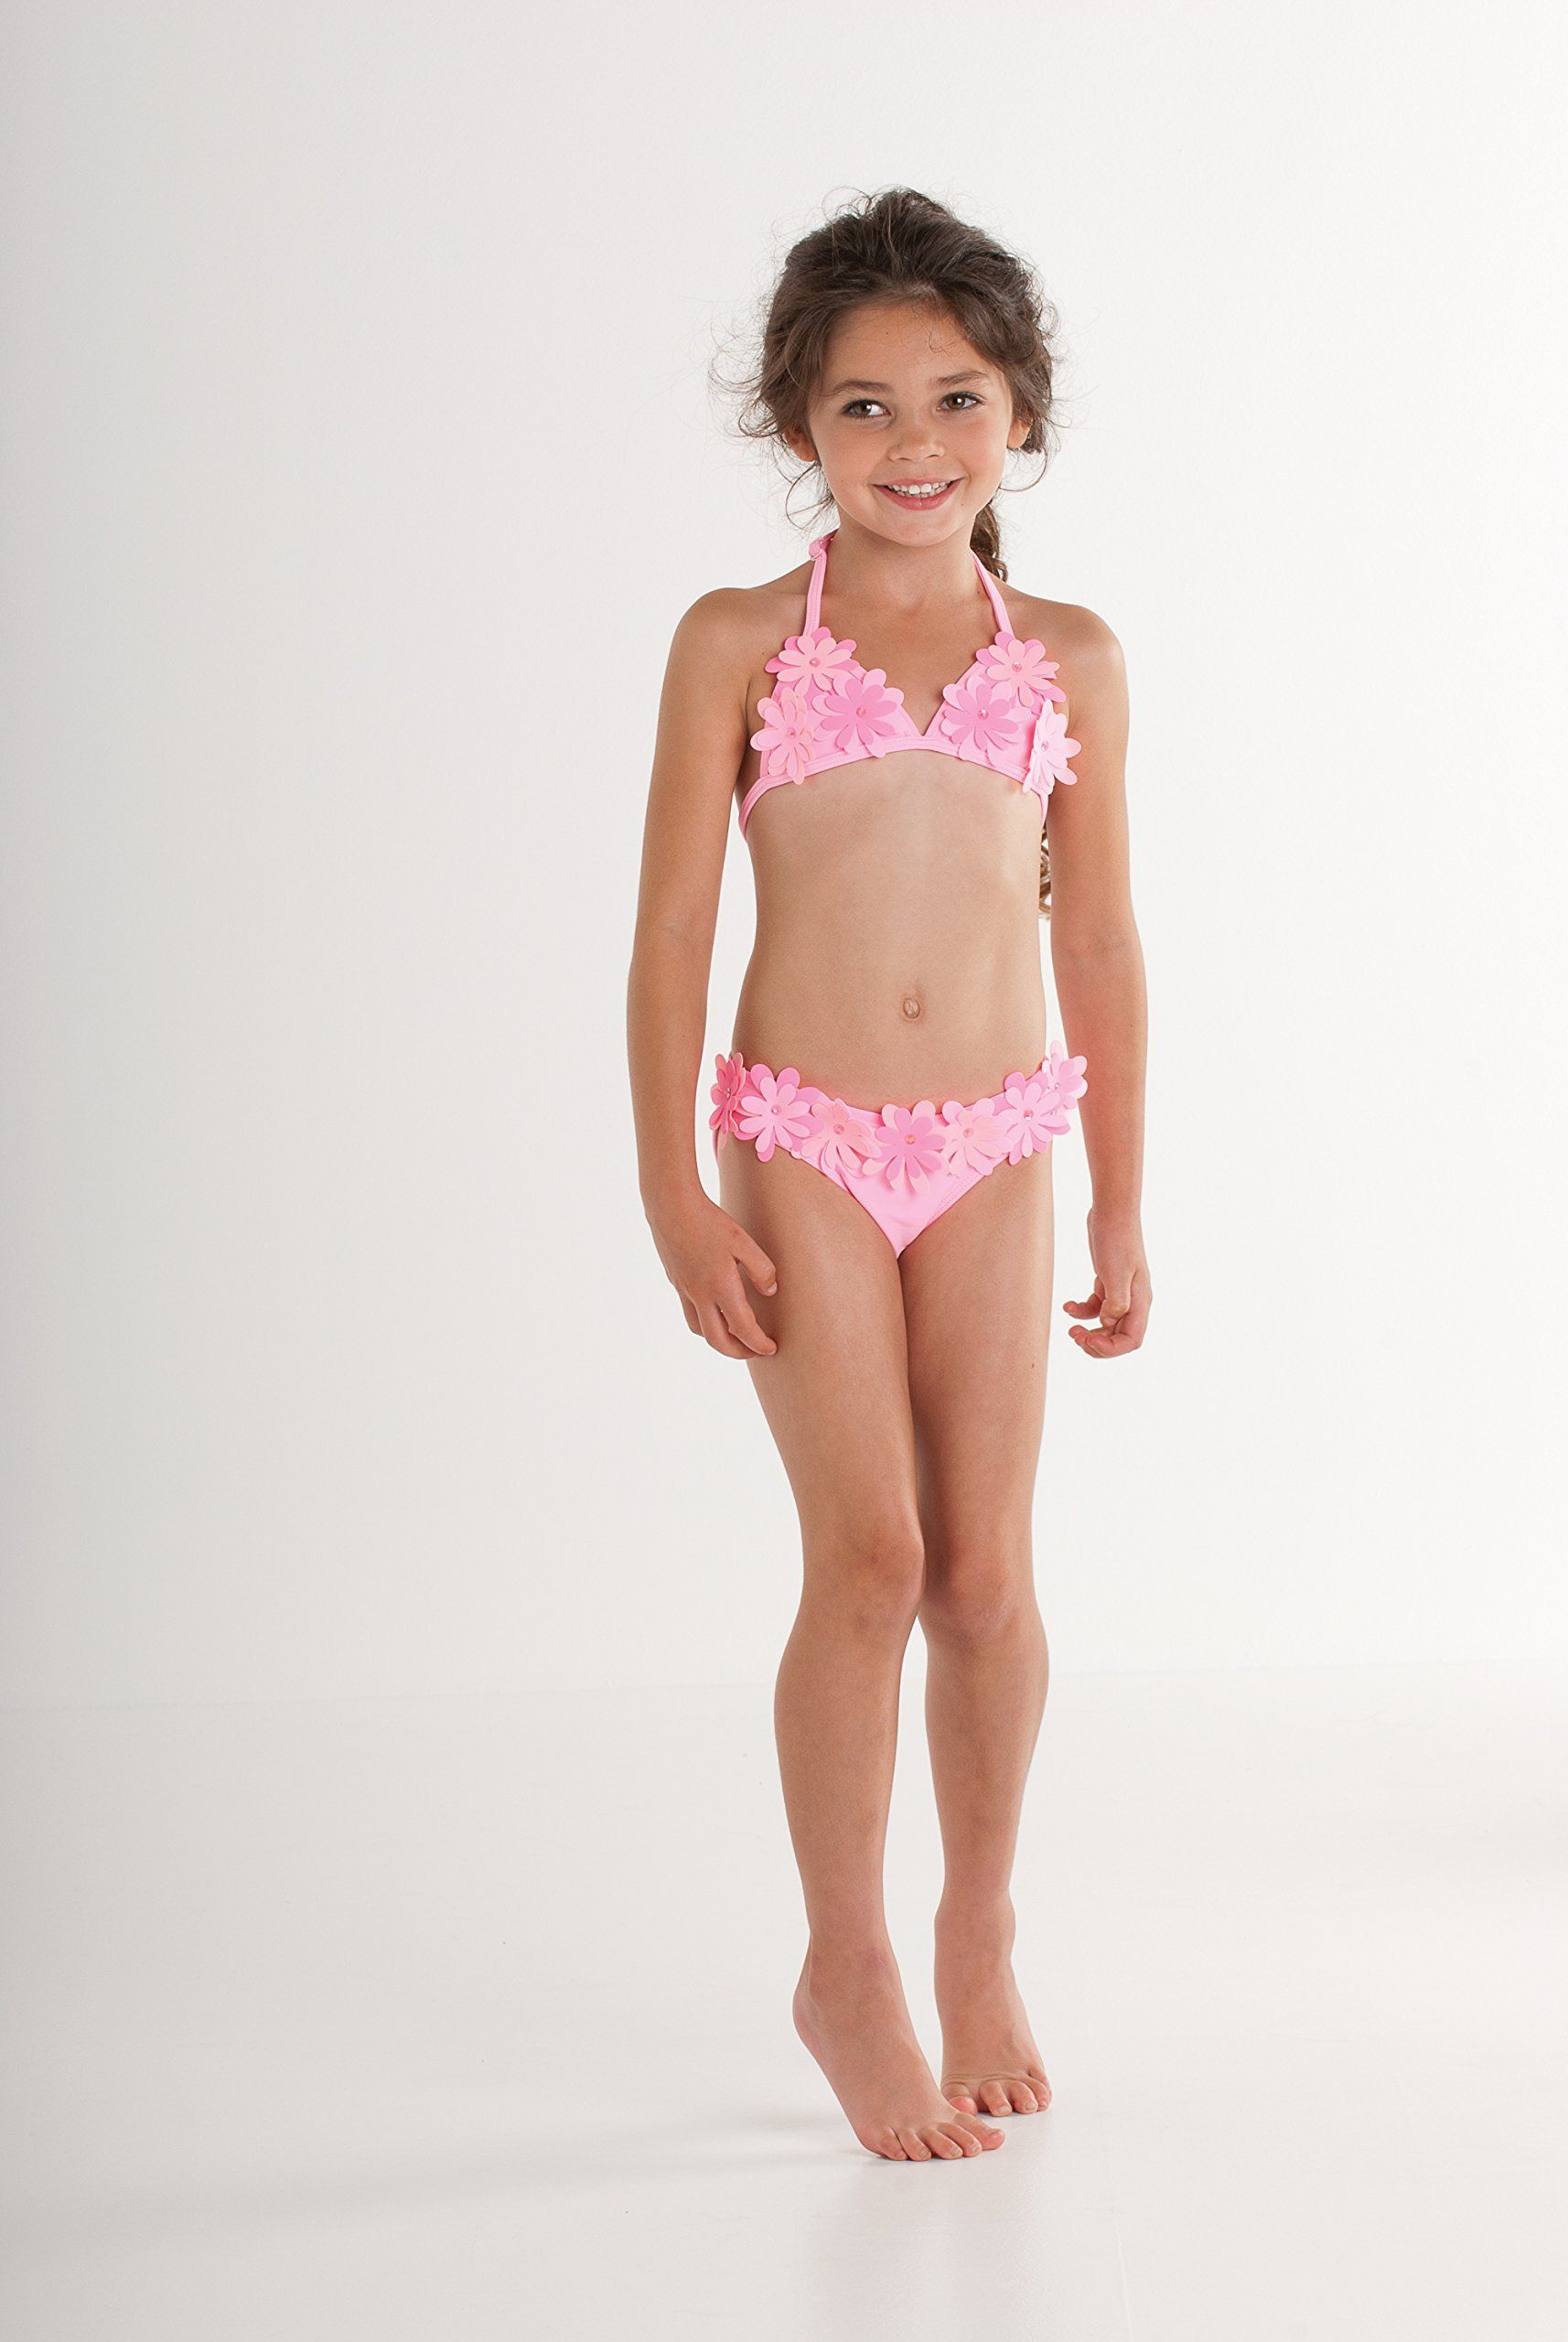 07918f01f805f Kate Mack Girl s 7-16 Dottie Daisy Bikini. Playful three dimensional daisies  dance across this darling two piece swimsuit in cotton candy pink.